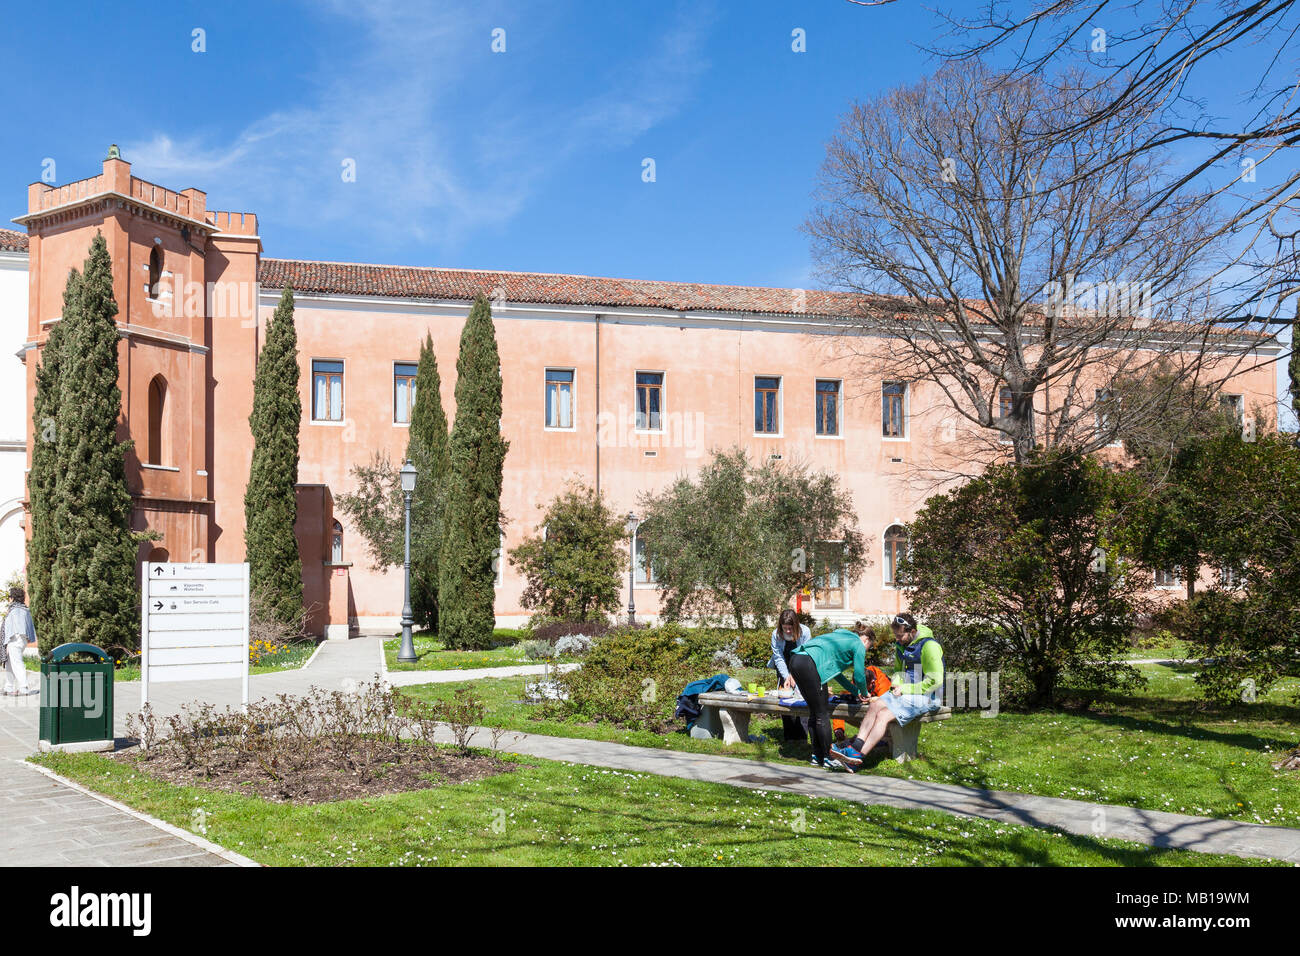 San Servolo Island, (Isola di San Servolo, Island of the Mad)  Venice, Veneto, Italy housing the Venice International University and the Insane Asylum - Stock Image